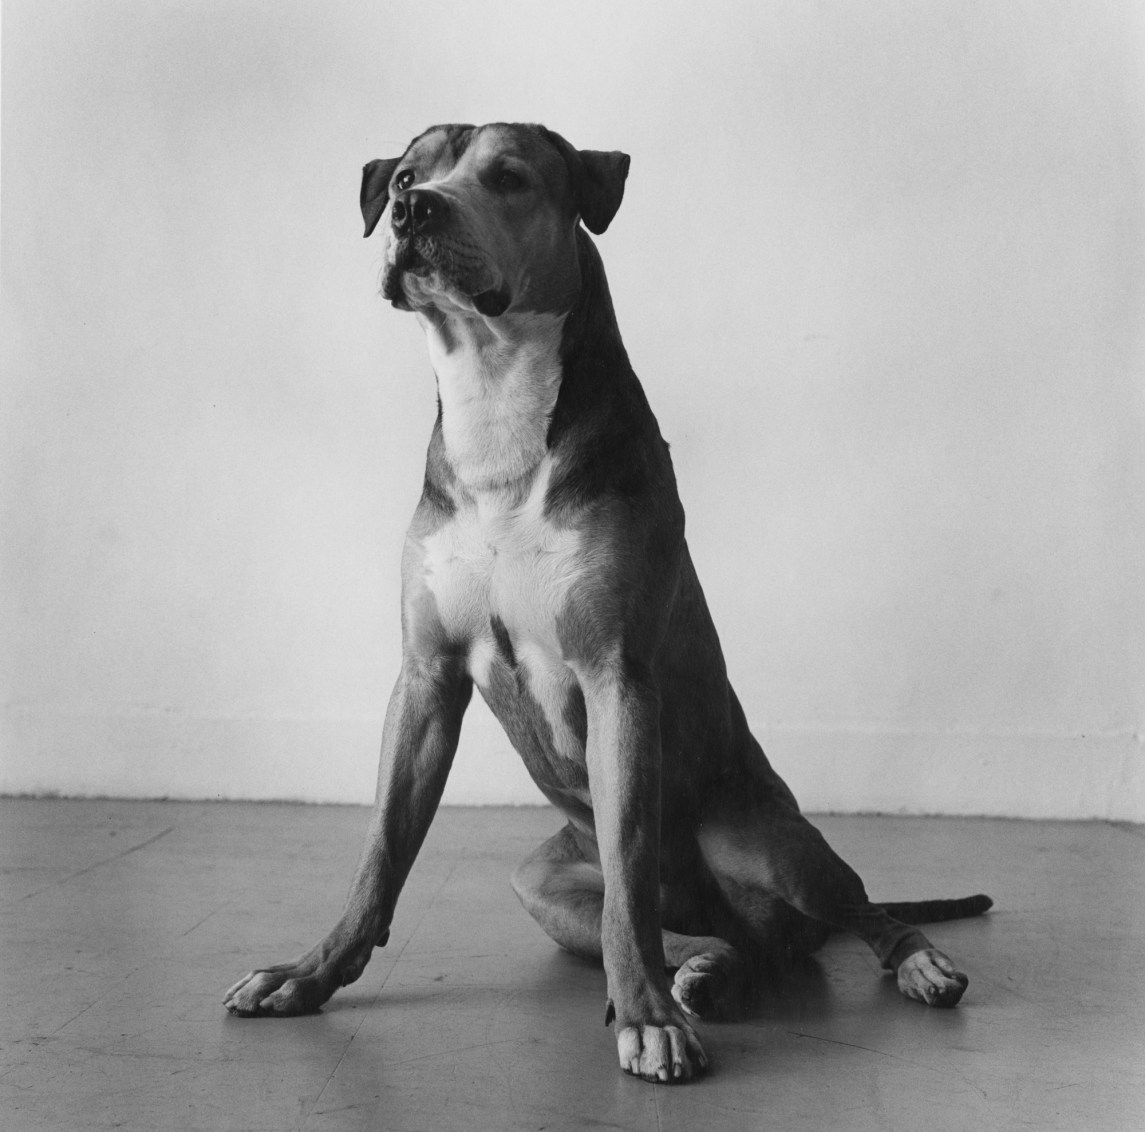 Black-and-white photograph of a seated dog